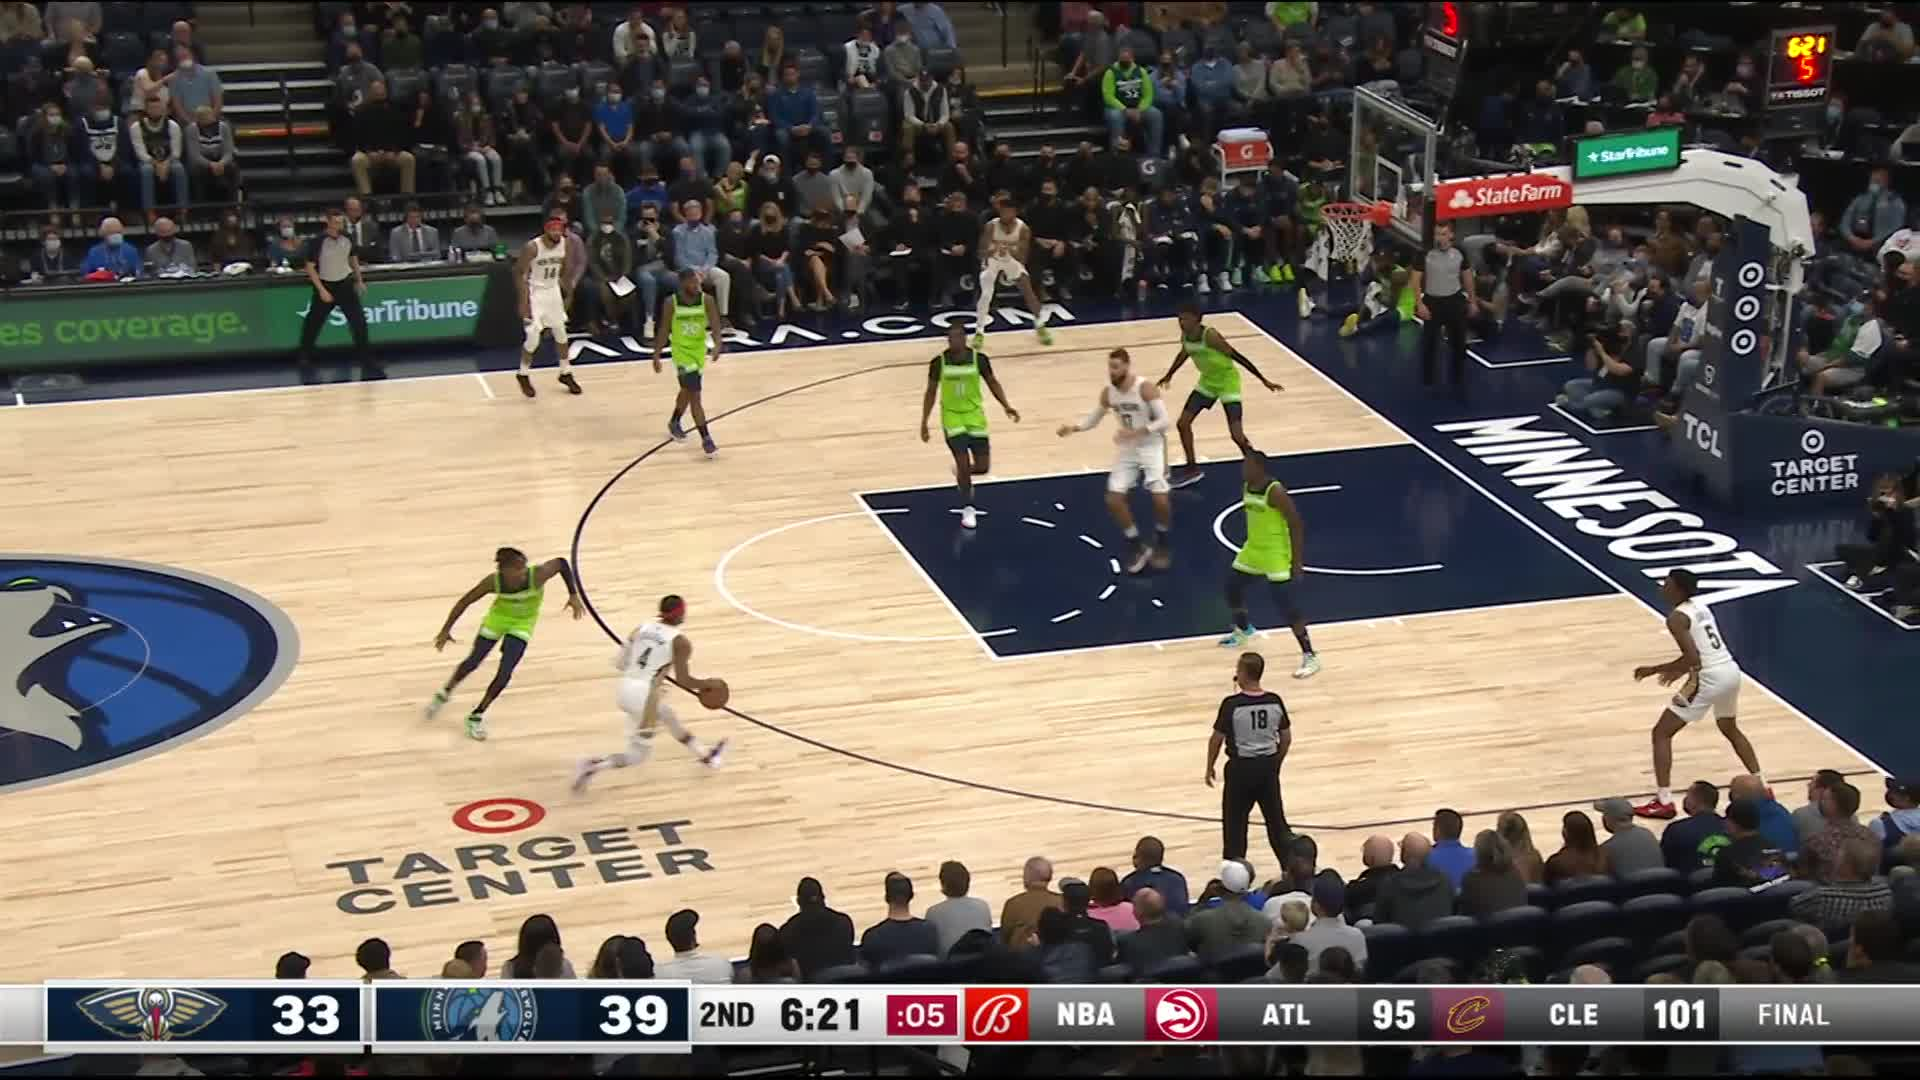 Dunk by D'Angelo Russell